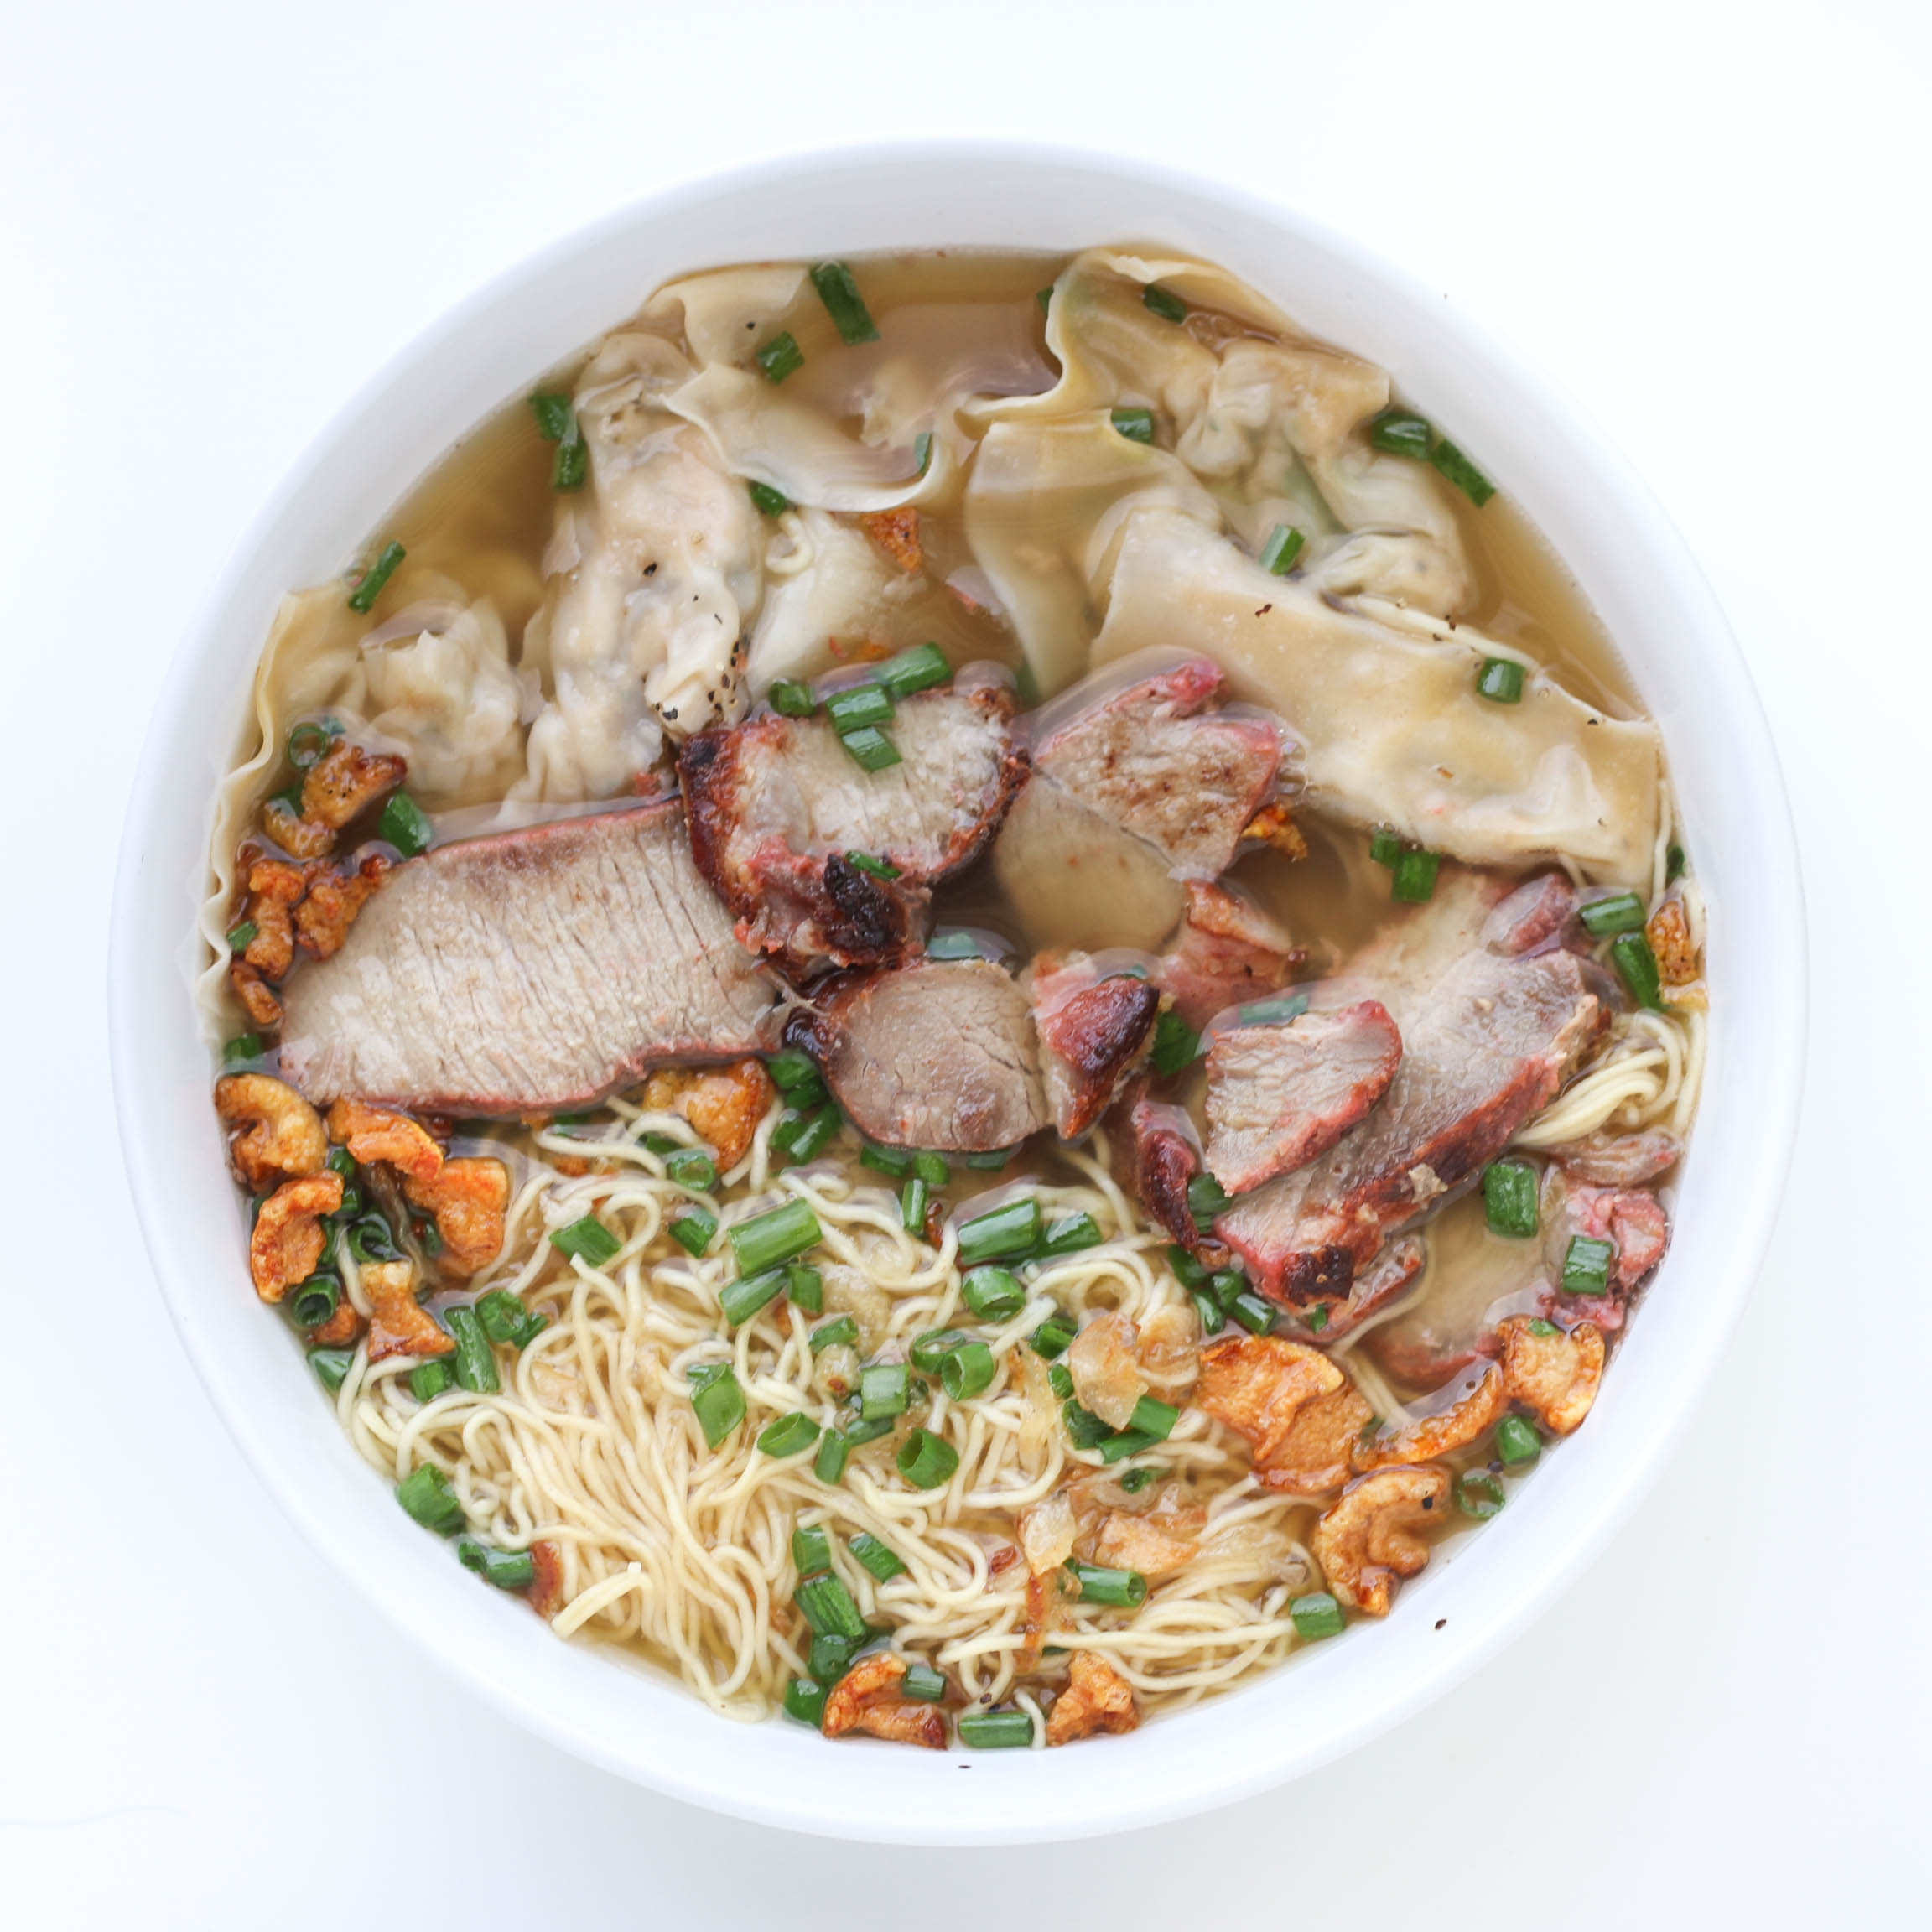 Egg noodle soup topped with pork fried fat (tep mo)